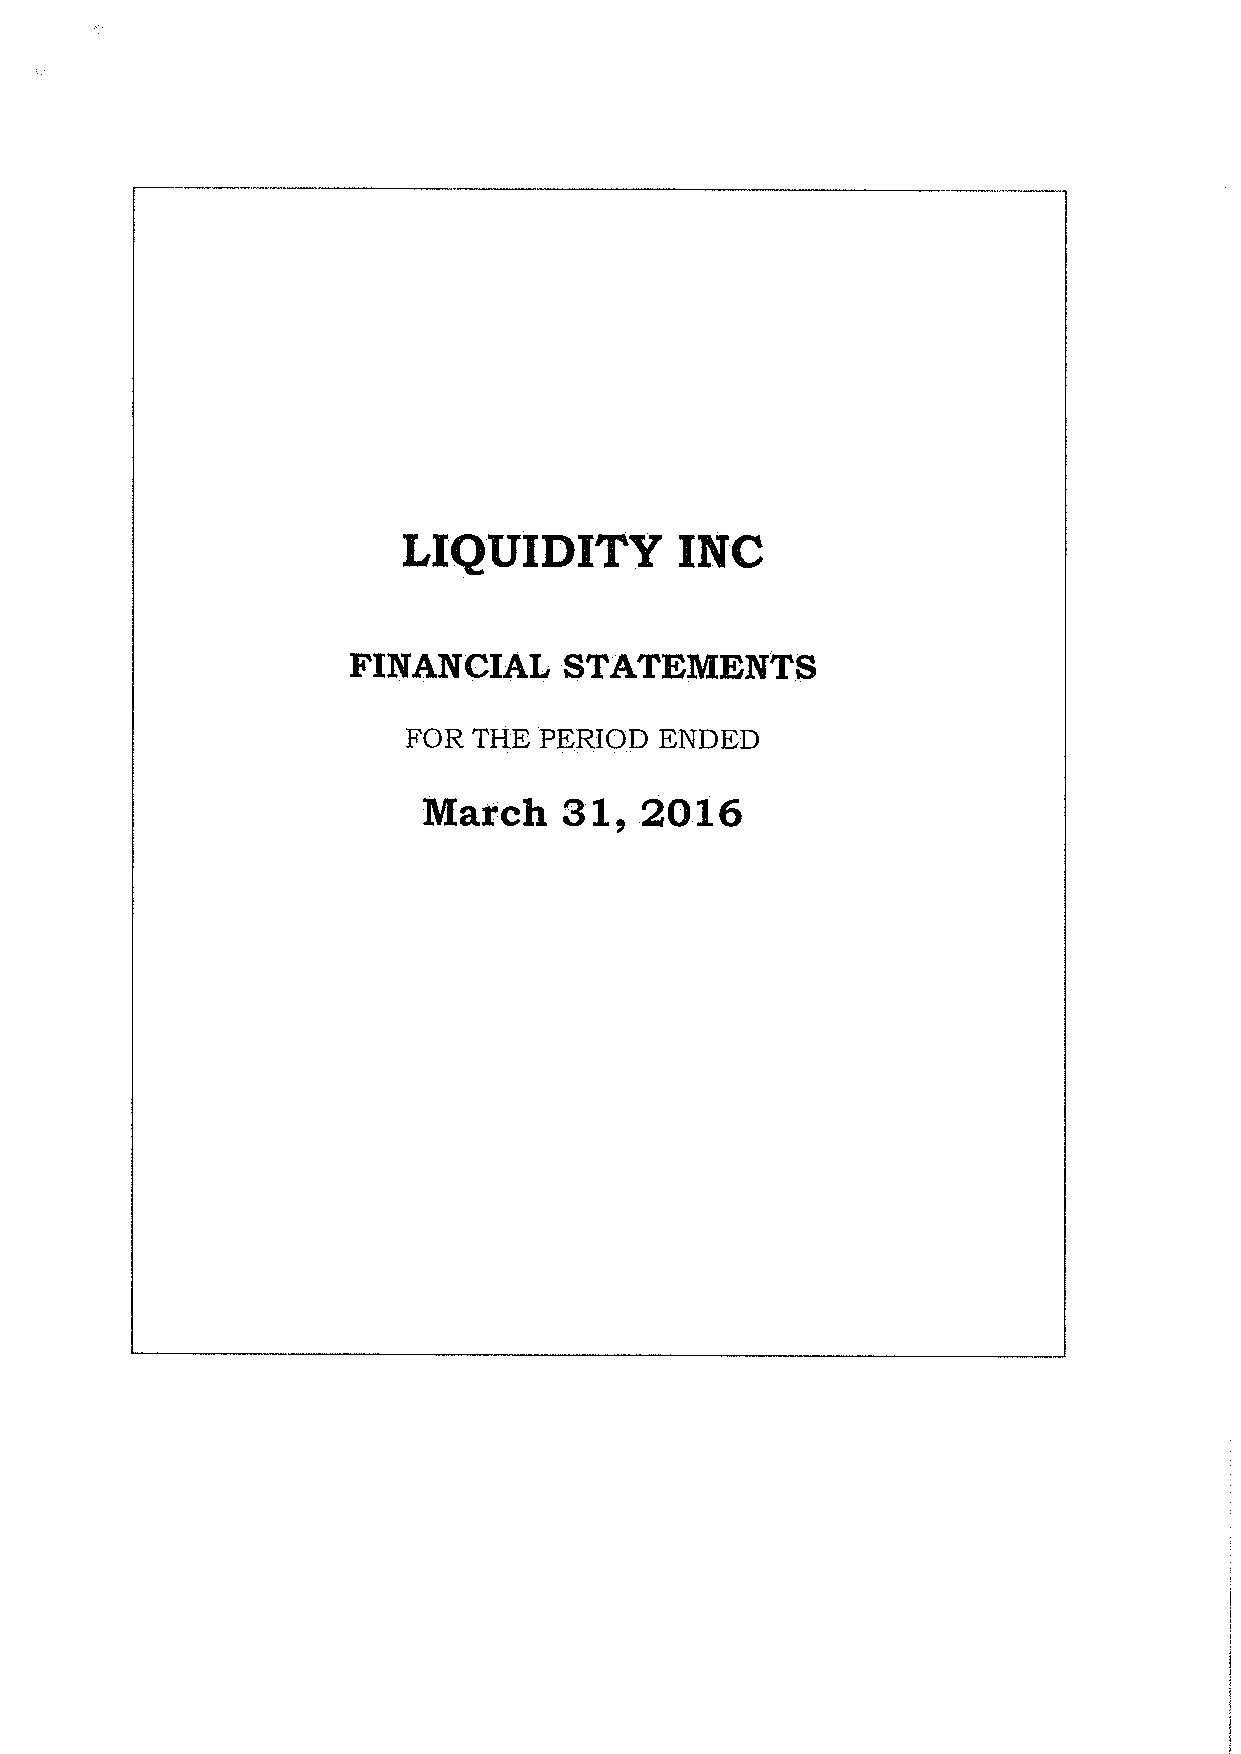 LIQUIDITY INC Result 2015-2016